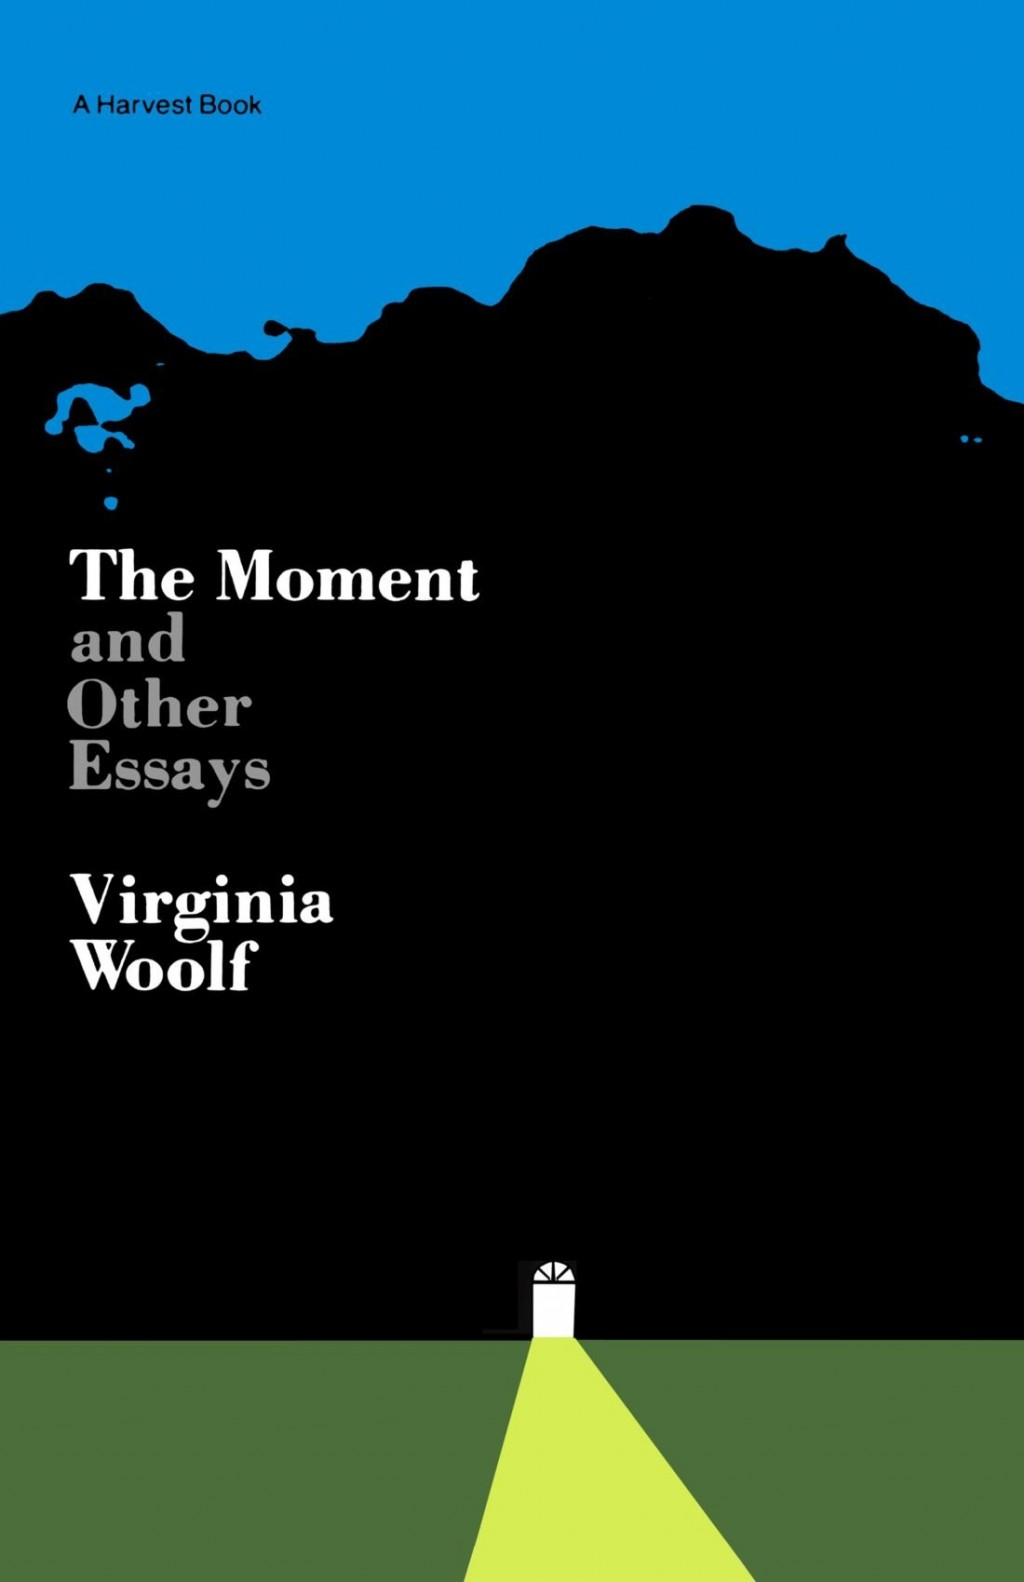 011 Virginia Woolf Essays Gs8rmzl Essay Unusual The Modern Pdf Woolf's Sketching Past Fiction Analysis Large